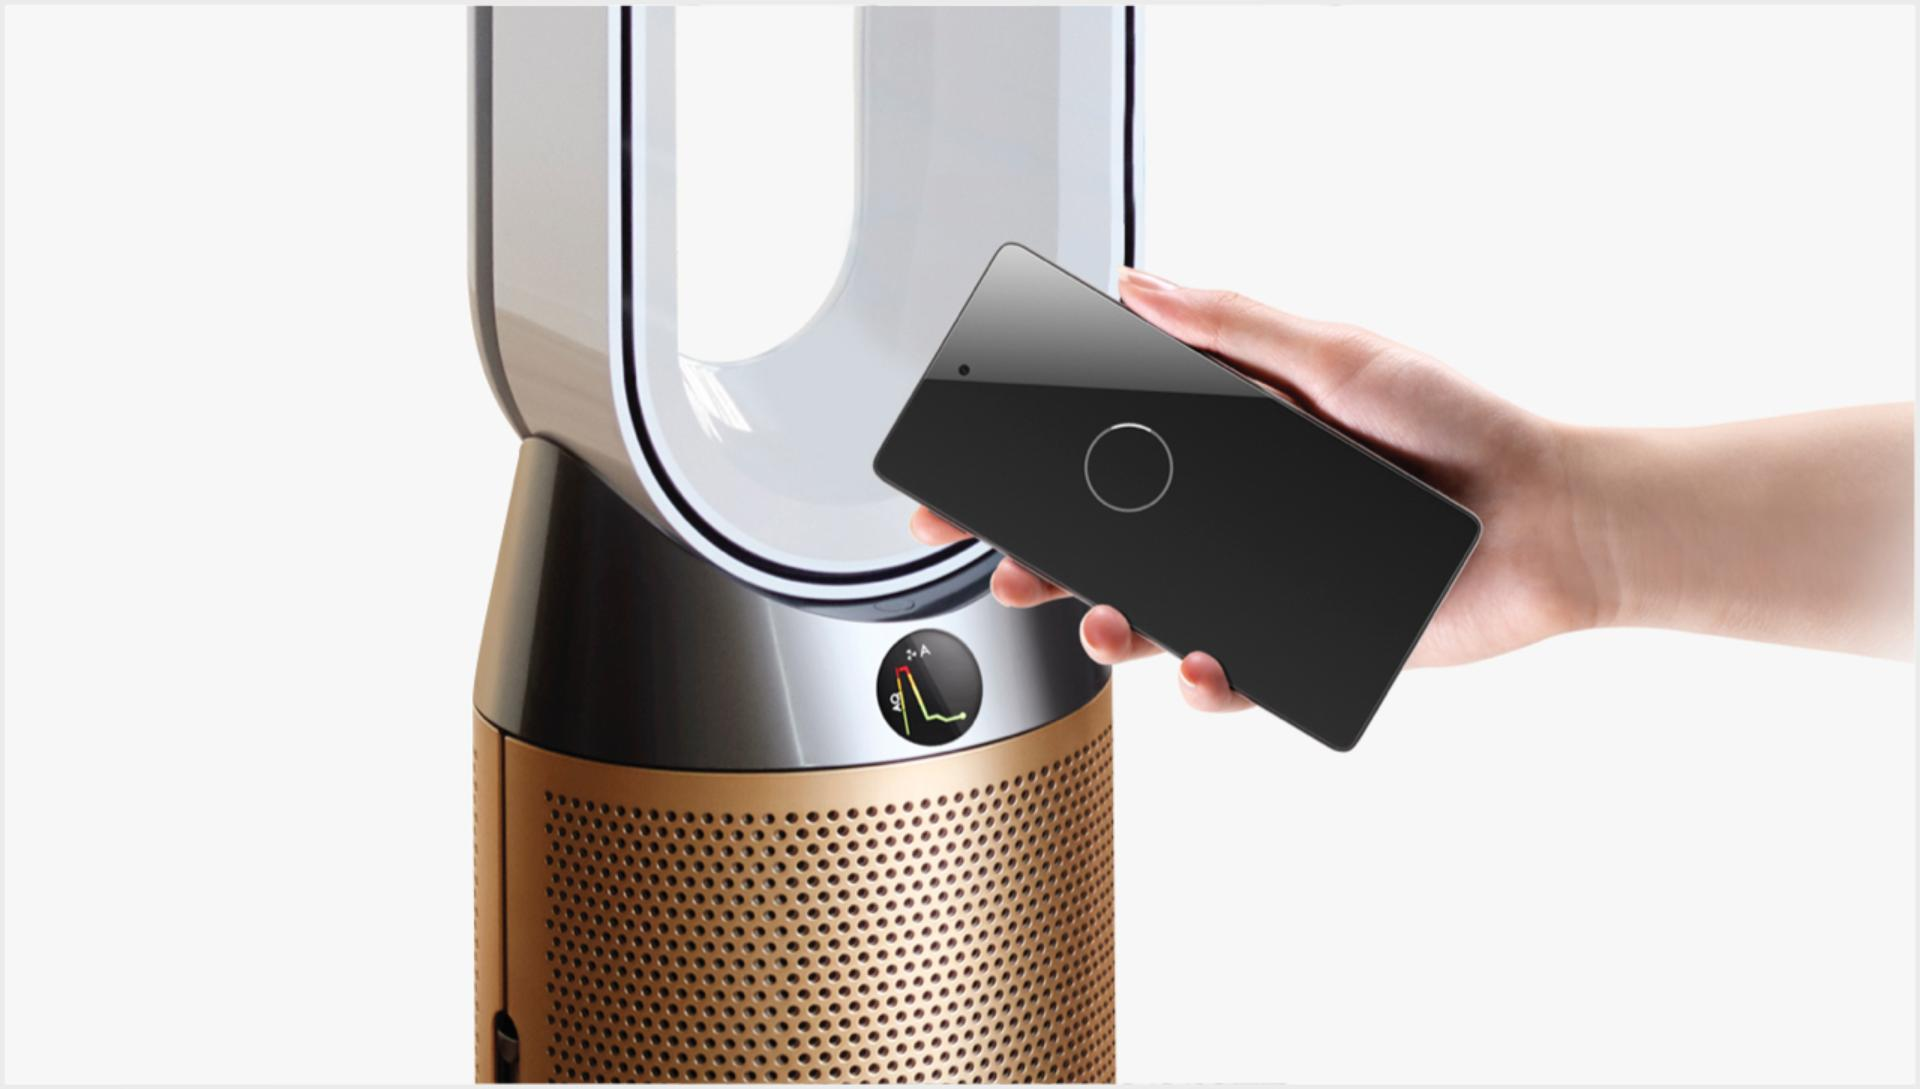 Phone held next to purifier